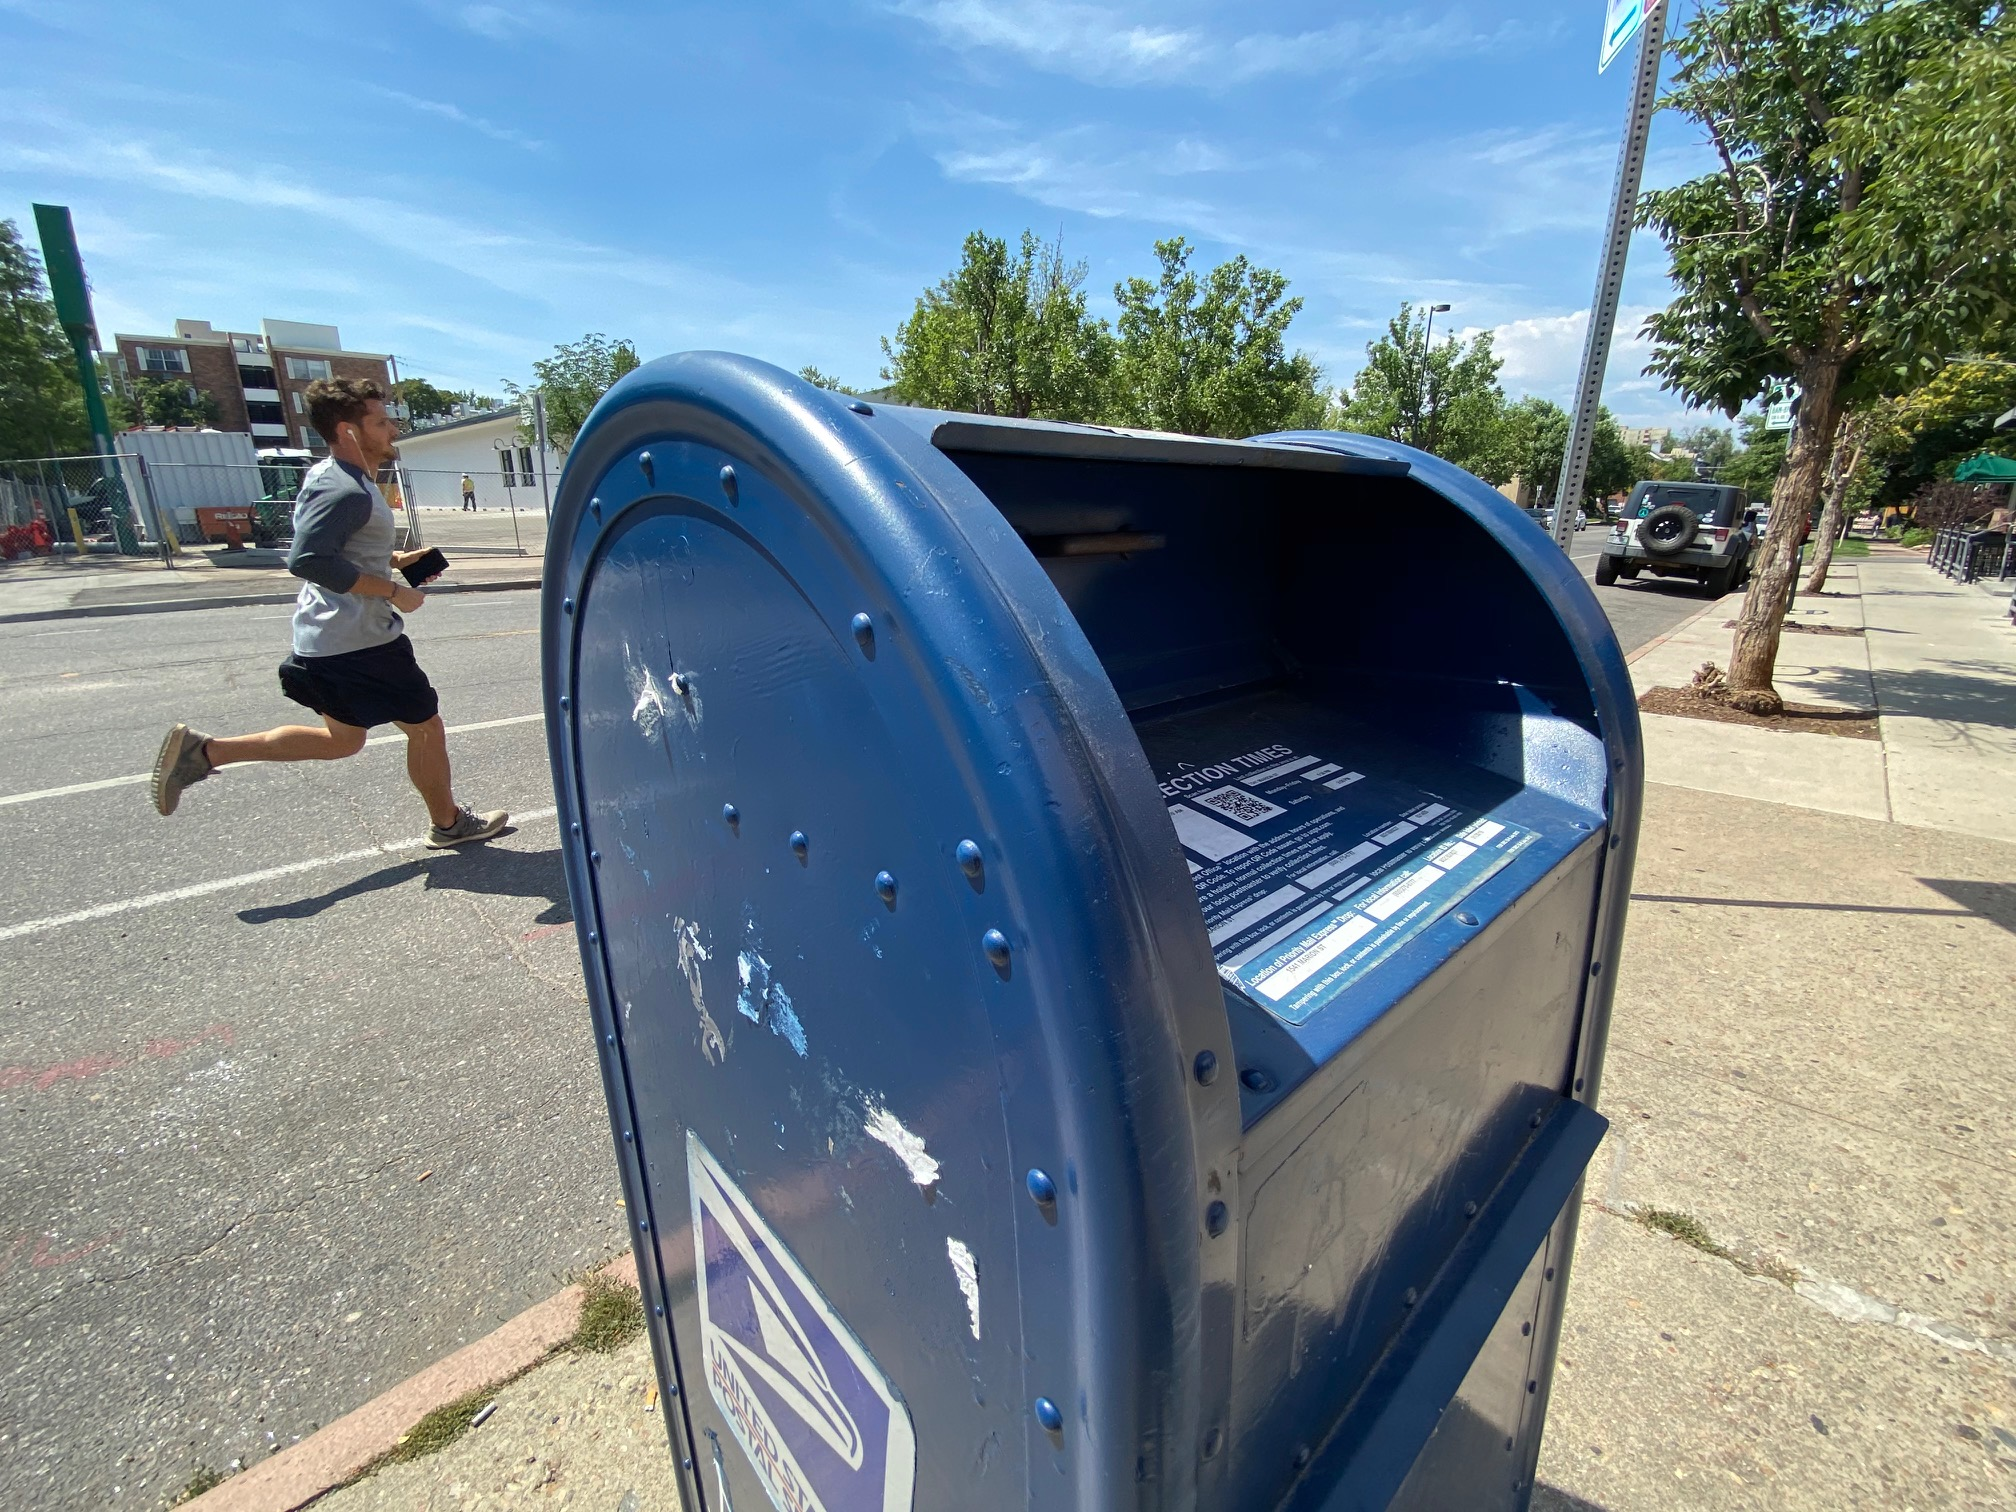 Postmaster general insists it's his 'sacred duty' to ensure election mail on time